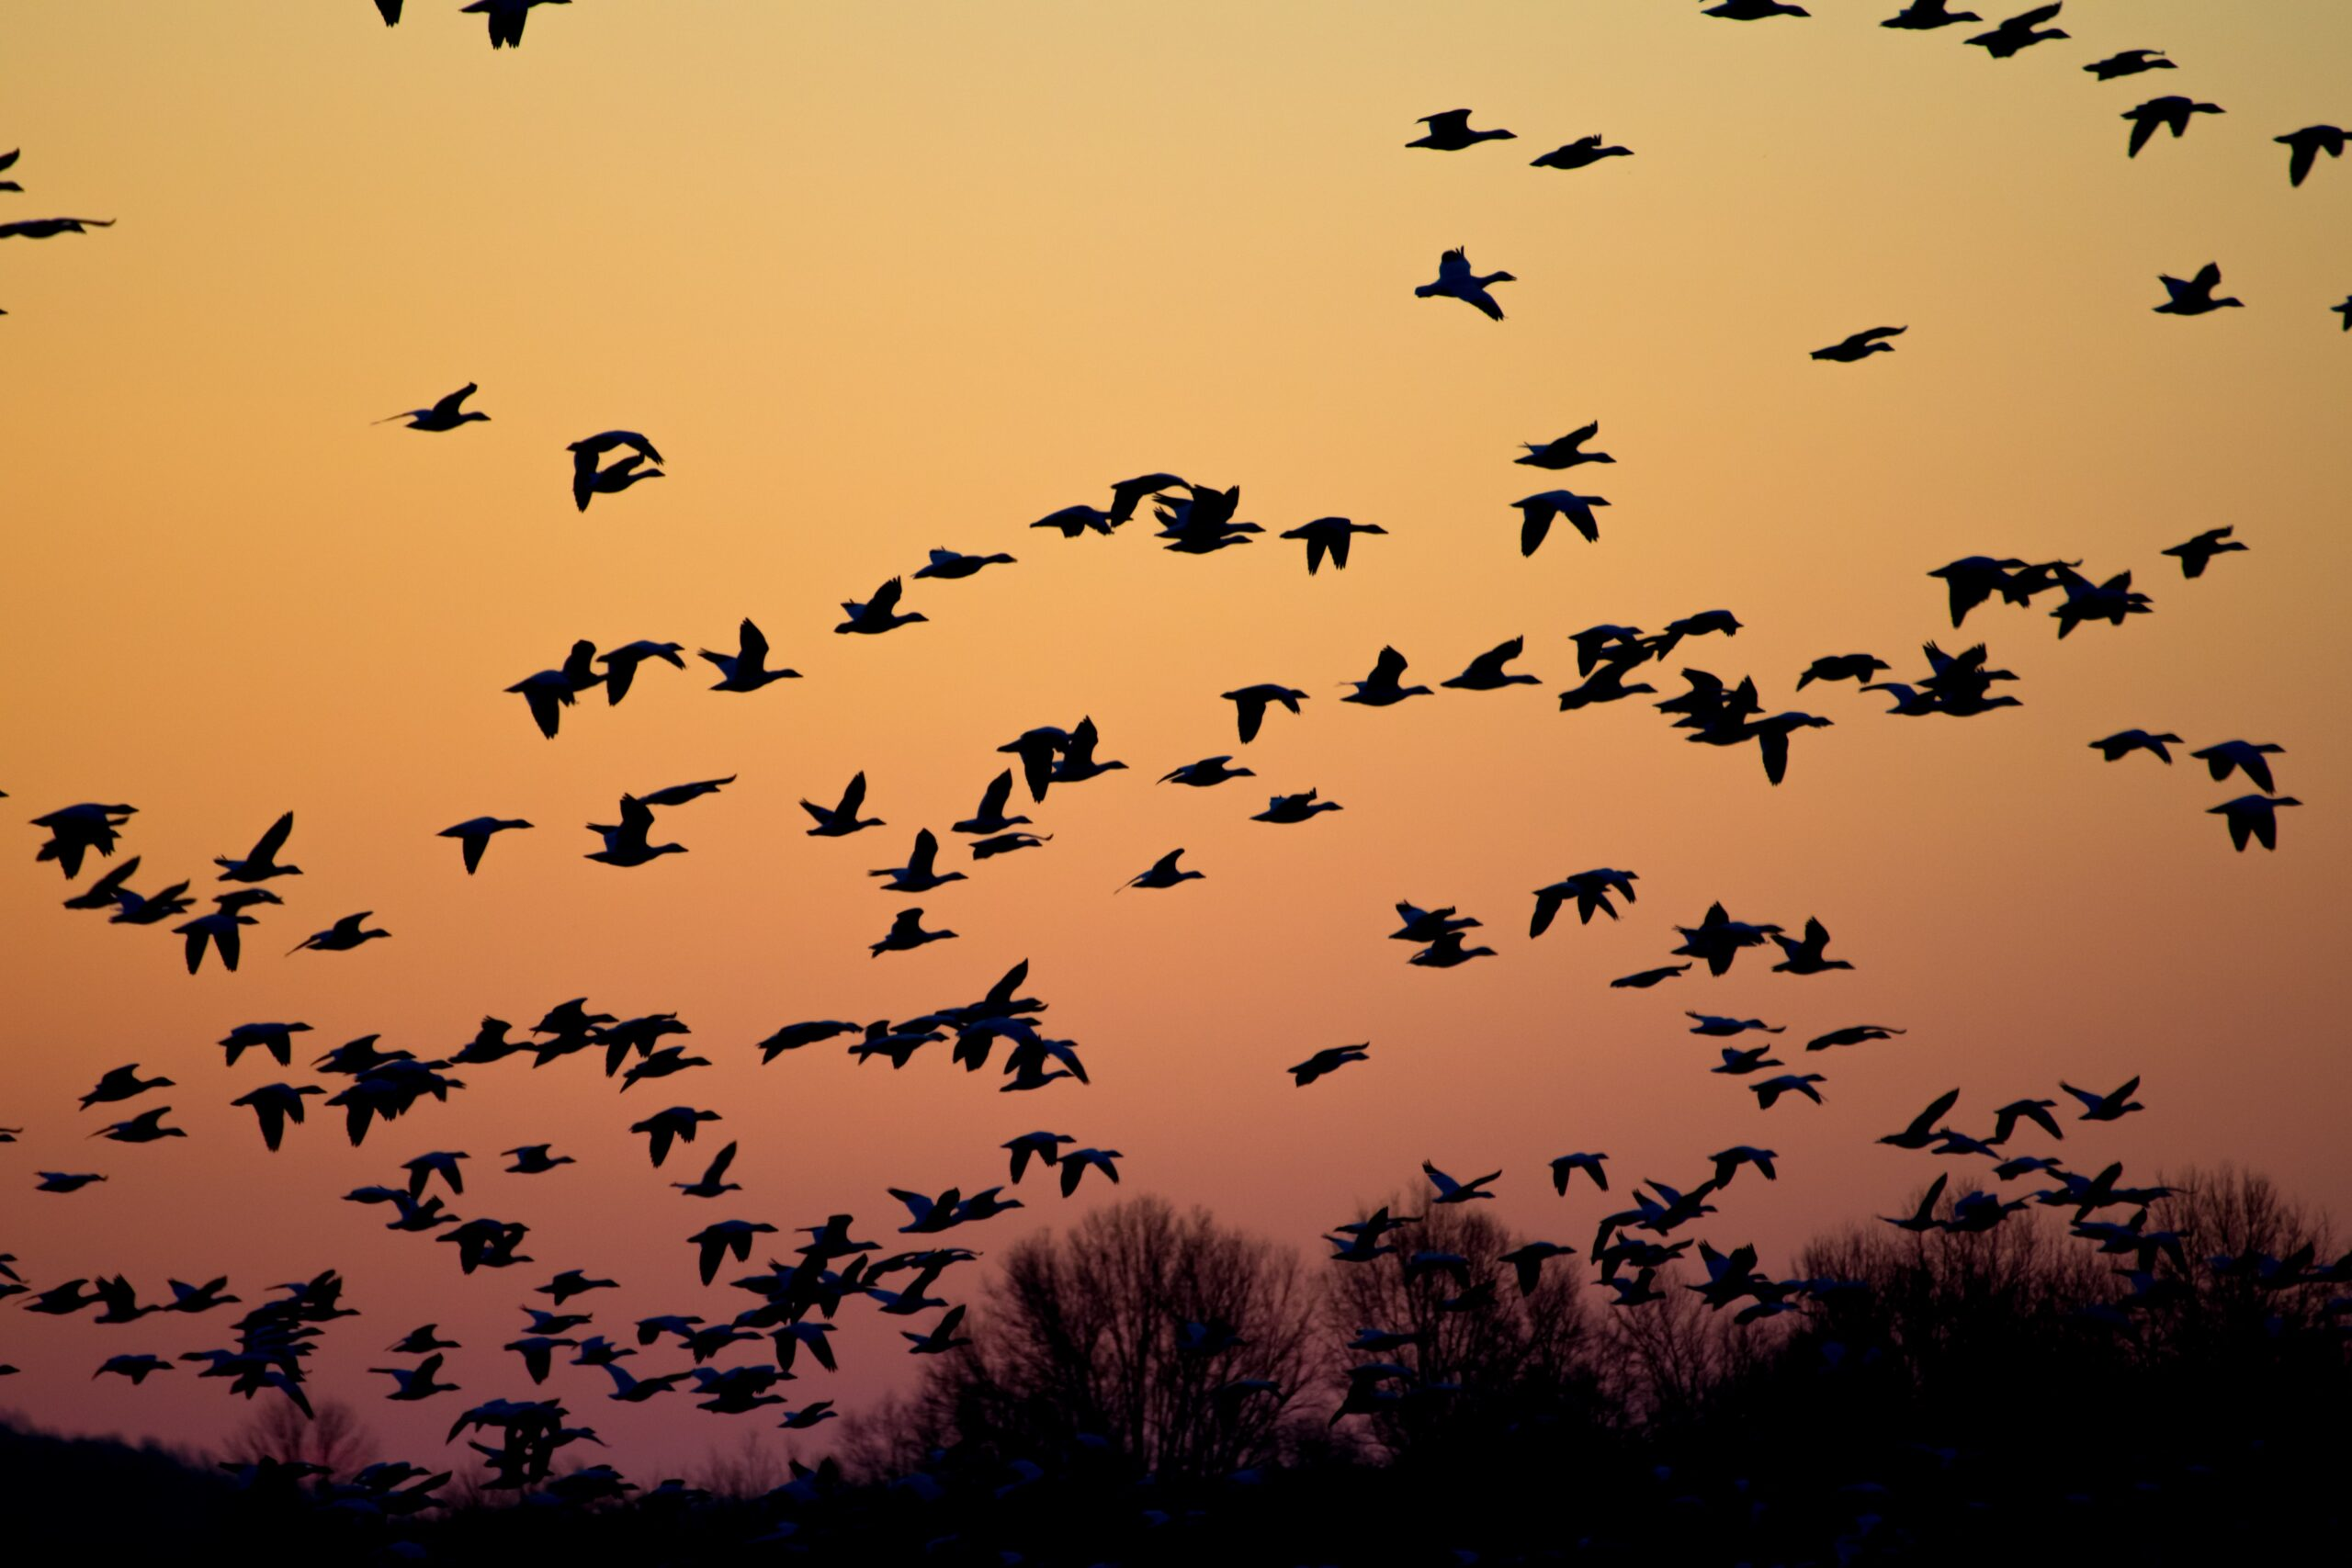 flock of bird silhouetted in organge night sky